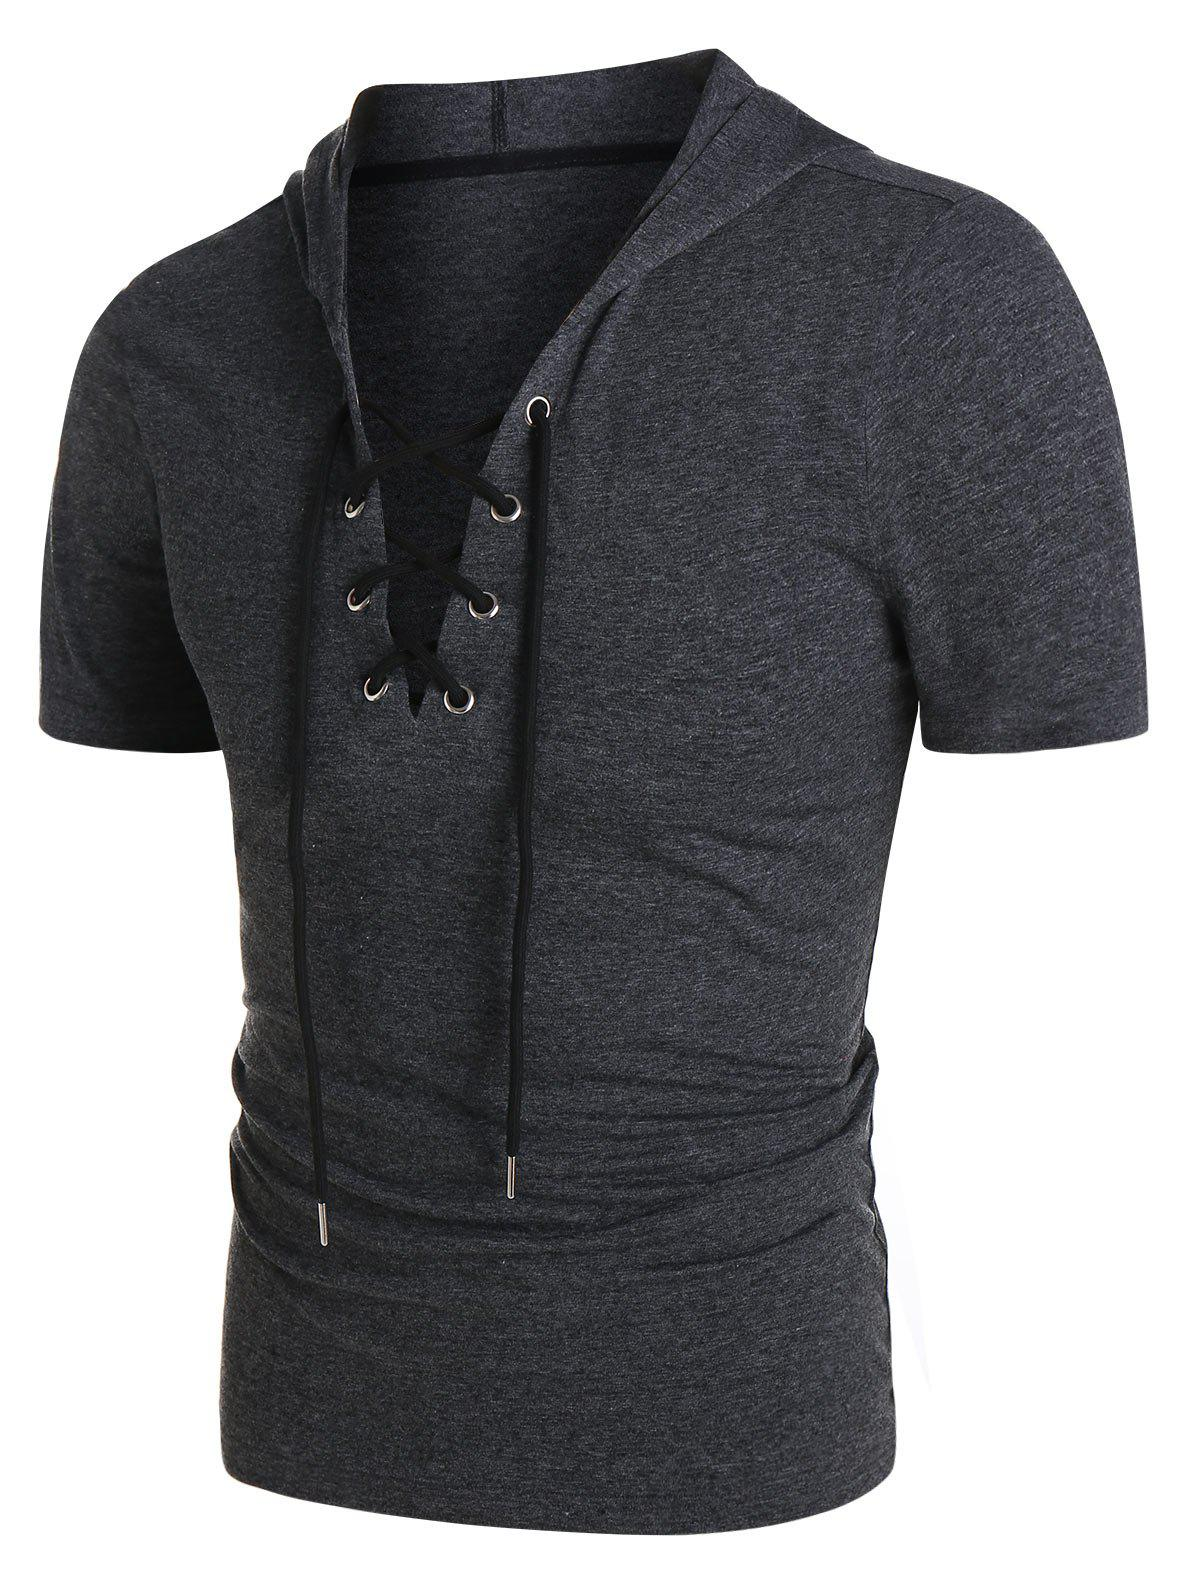 Cheap Heathered Short Sleeve Lace-up Hoodie